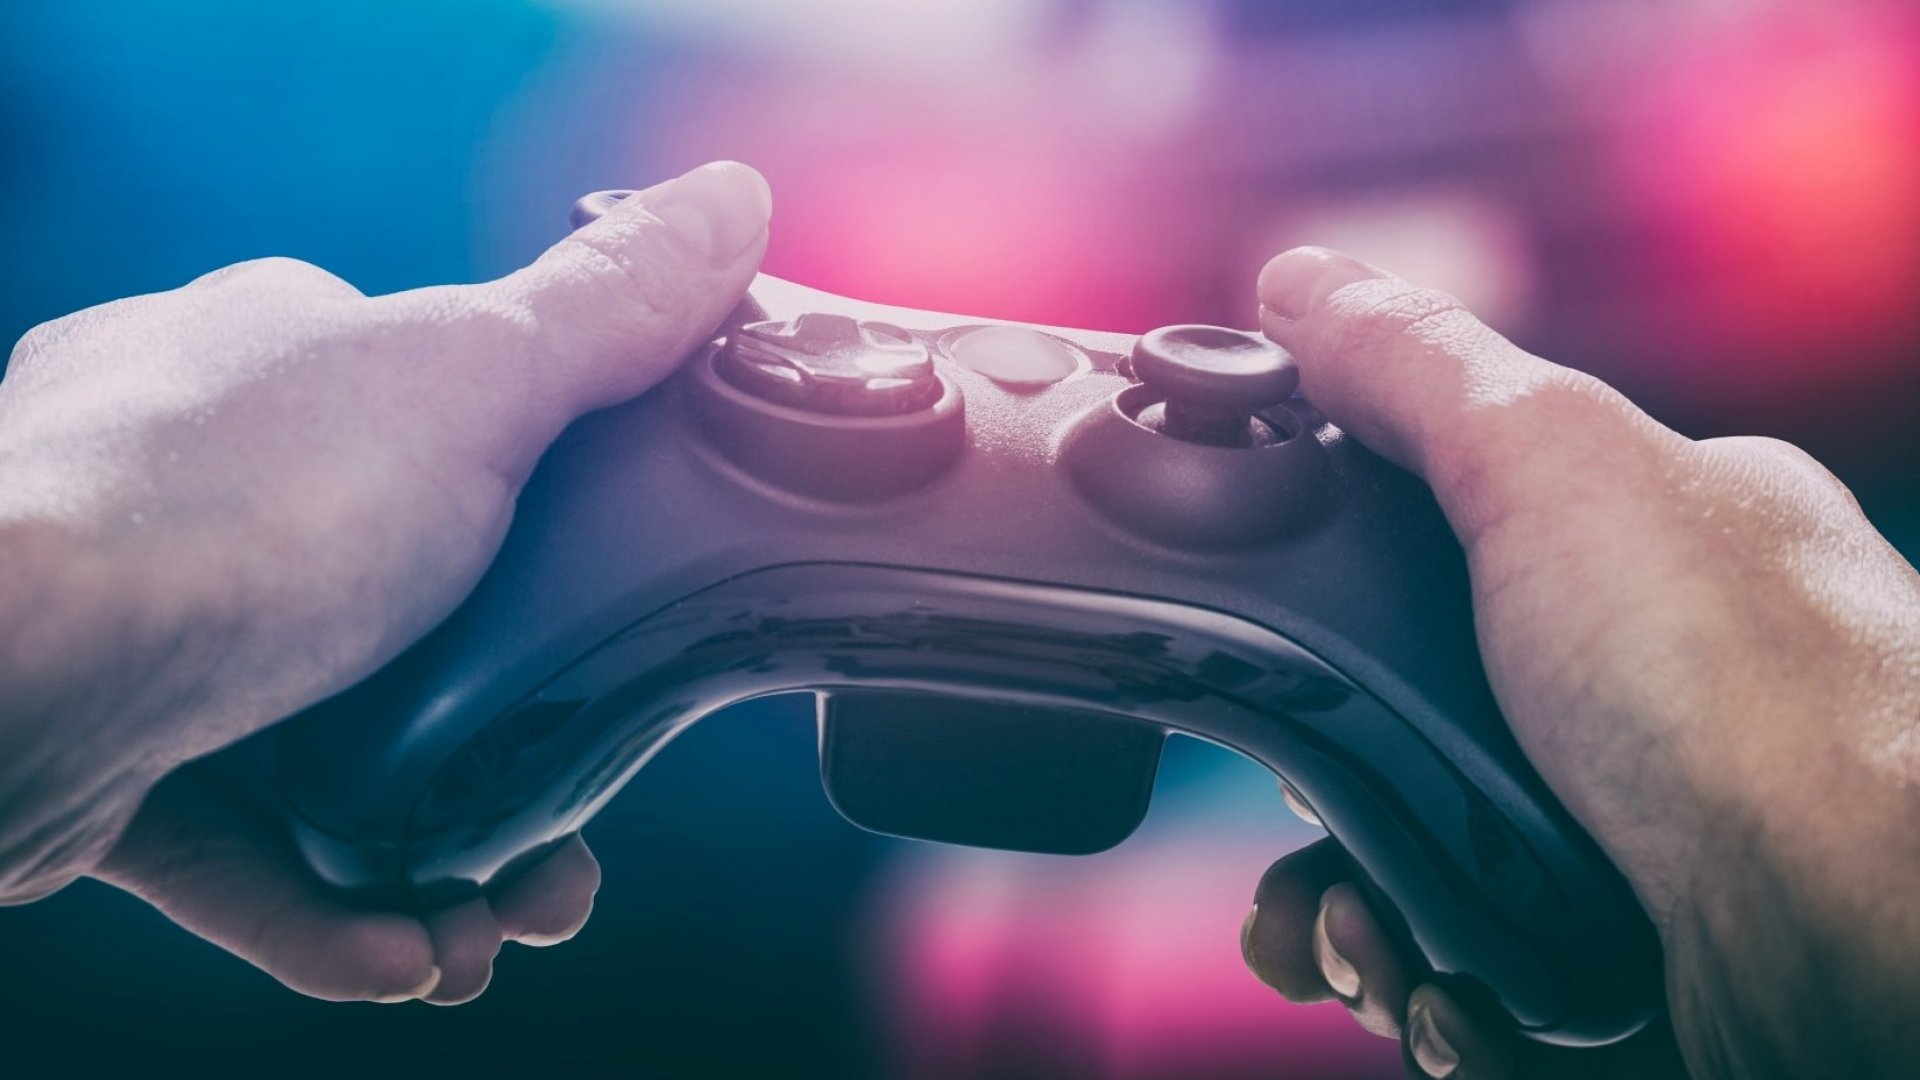 10 Most Innovative Video Games of 2018